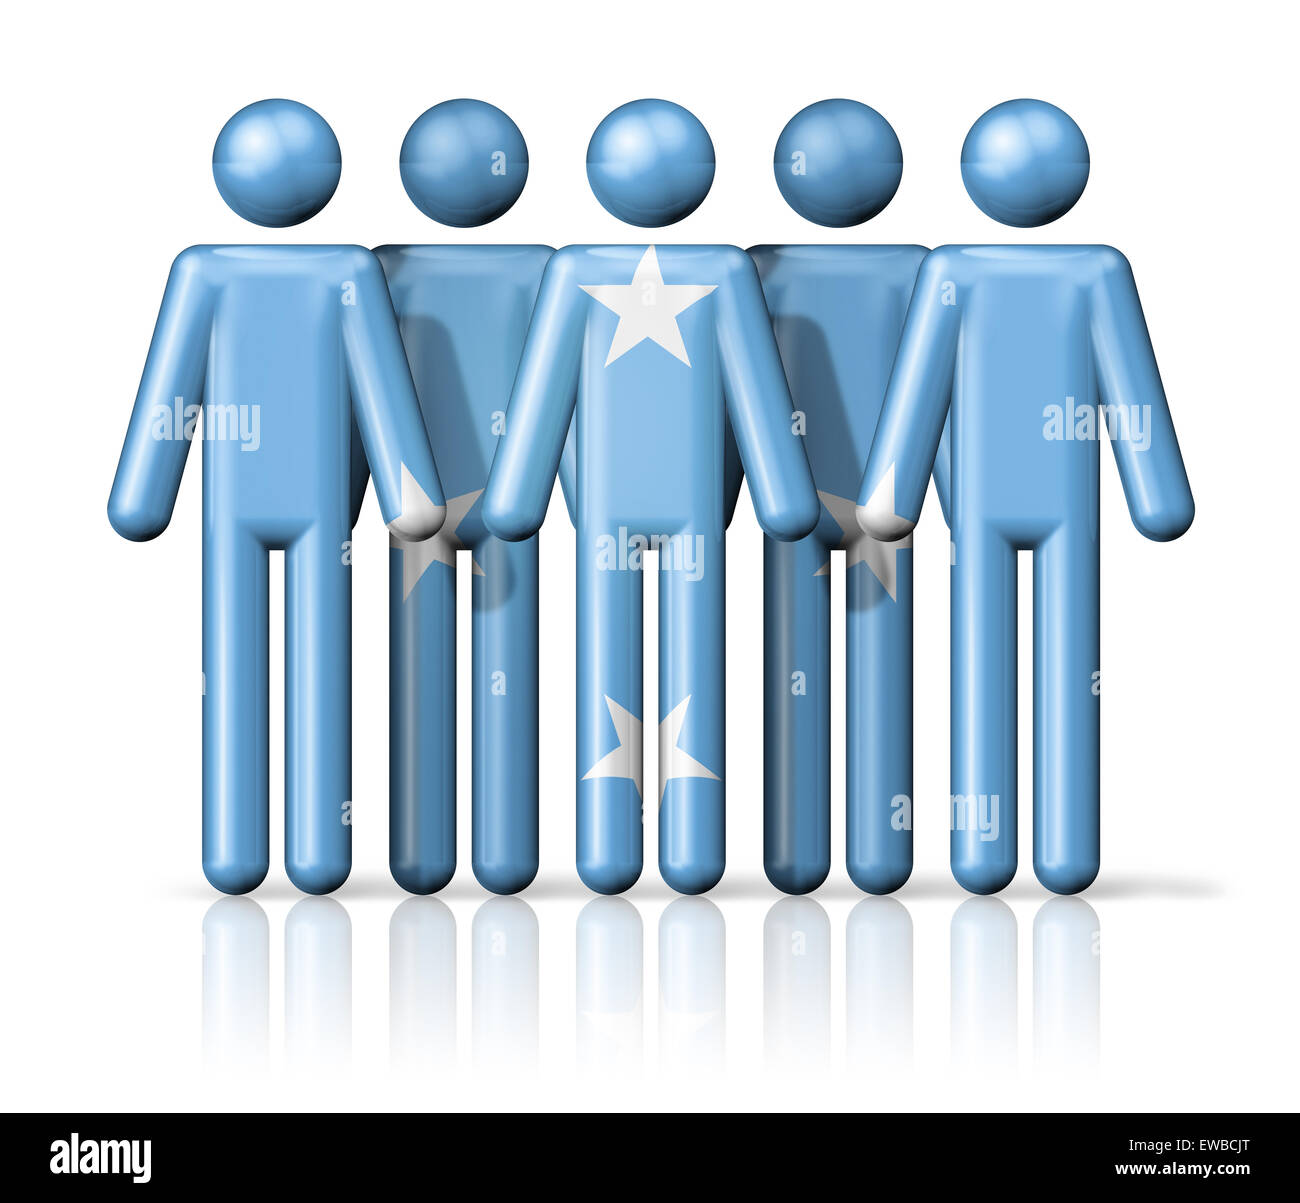 Flag of Micronesia on stick figure - national and social community symbol 3D icon - Stock Image